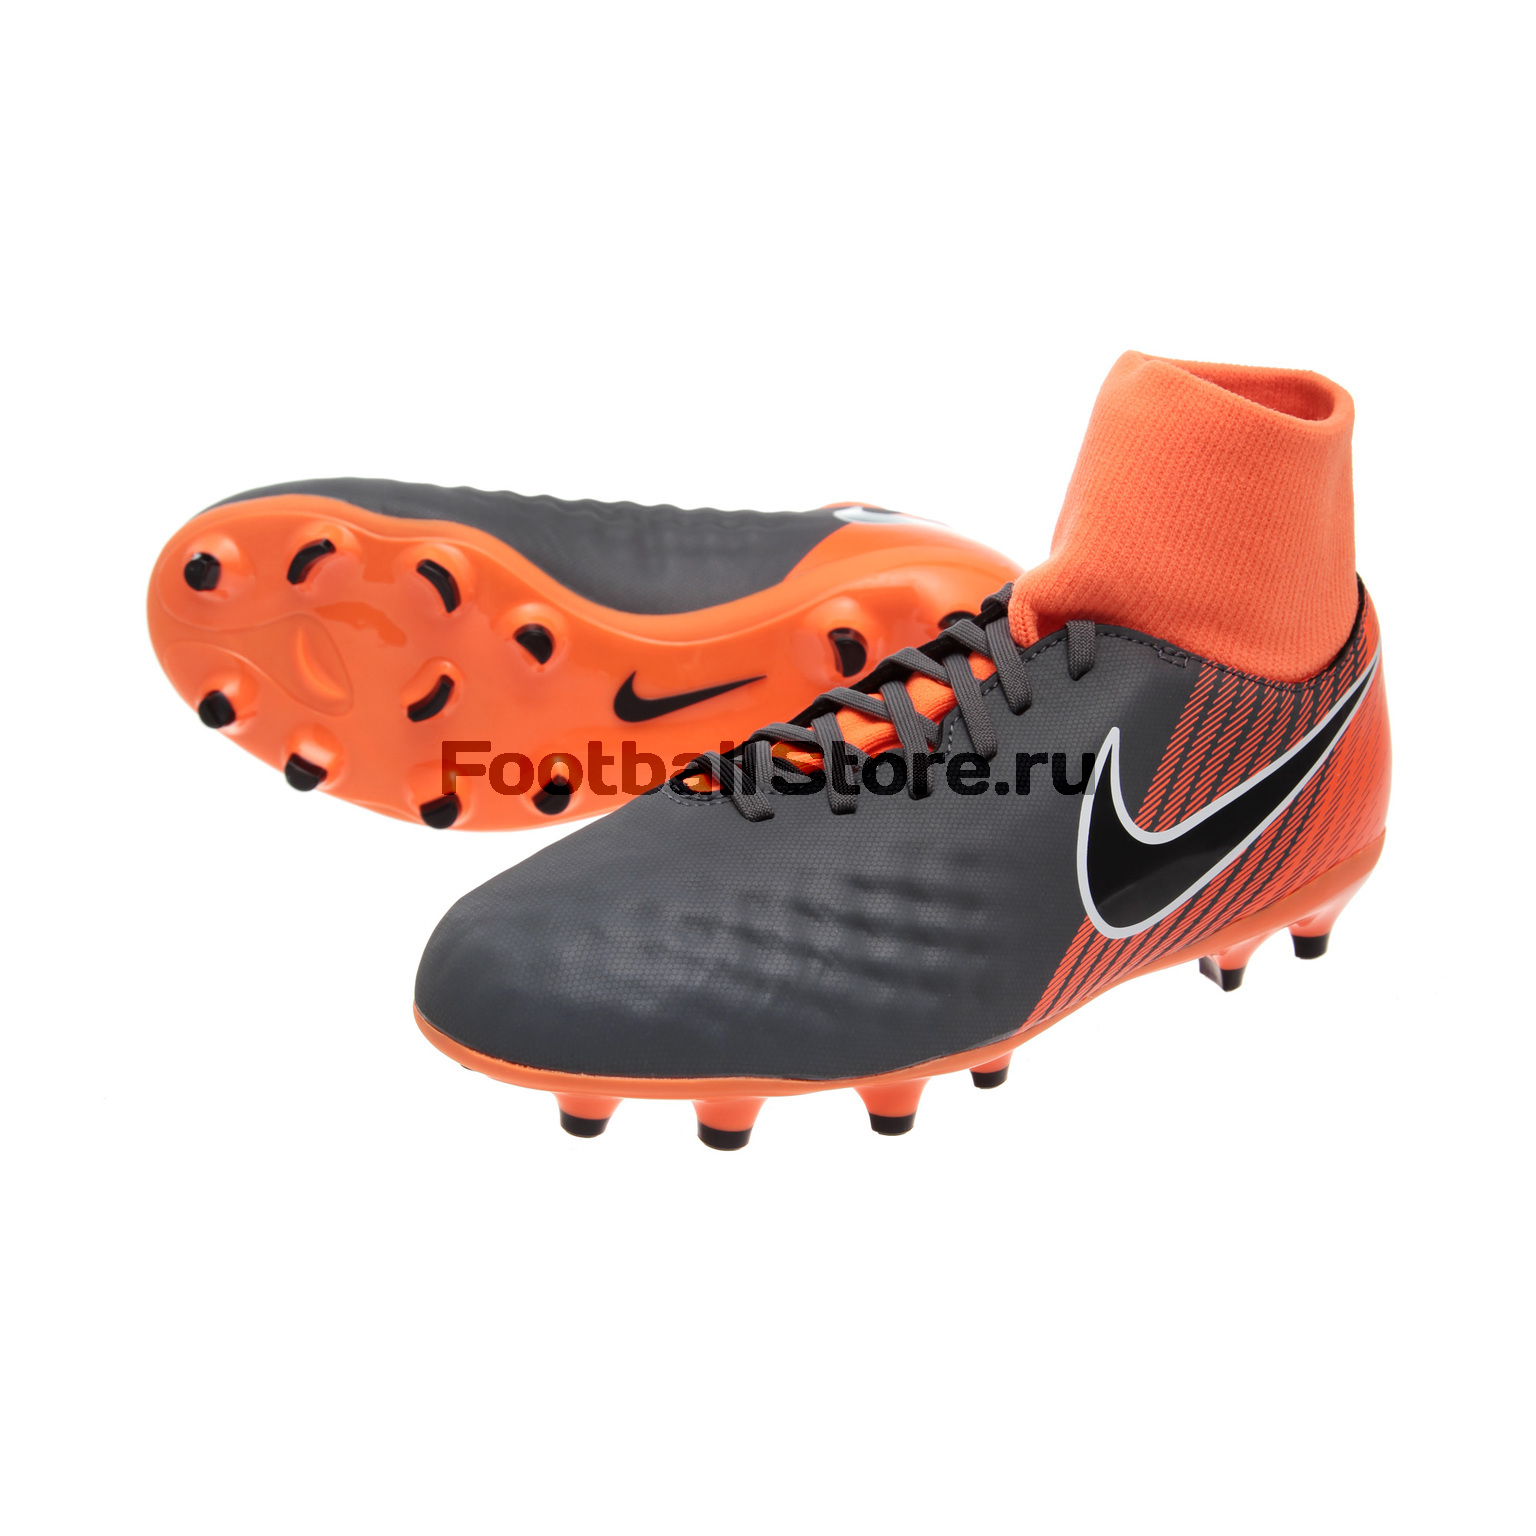 Бутсы Nike JR Obra 2 Academy DF FG AH7313-080 бутсы nike superfly academy gs cr7 jr fg mg aj3111 390